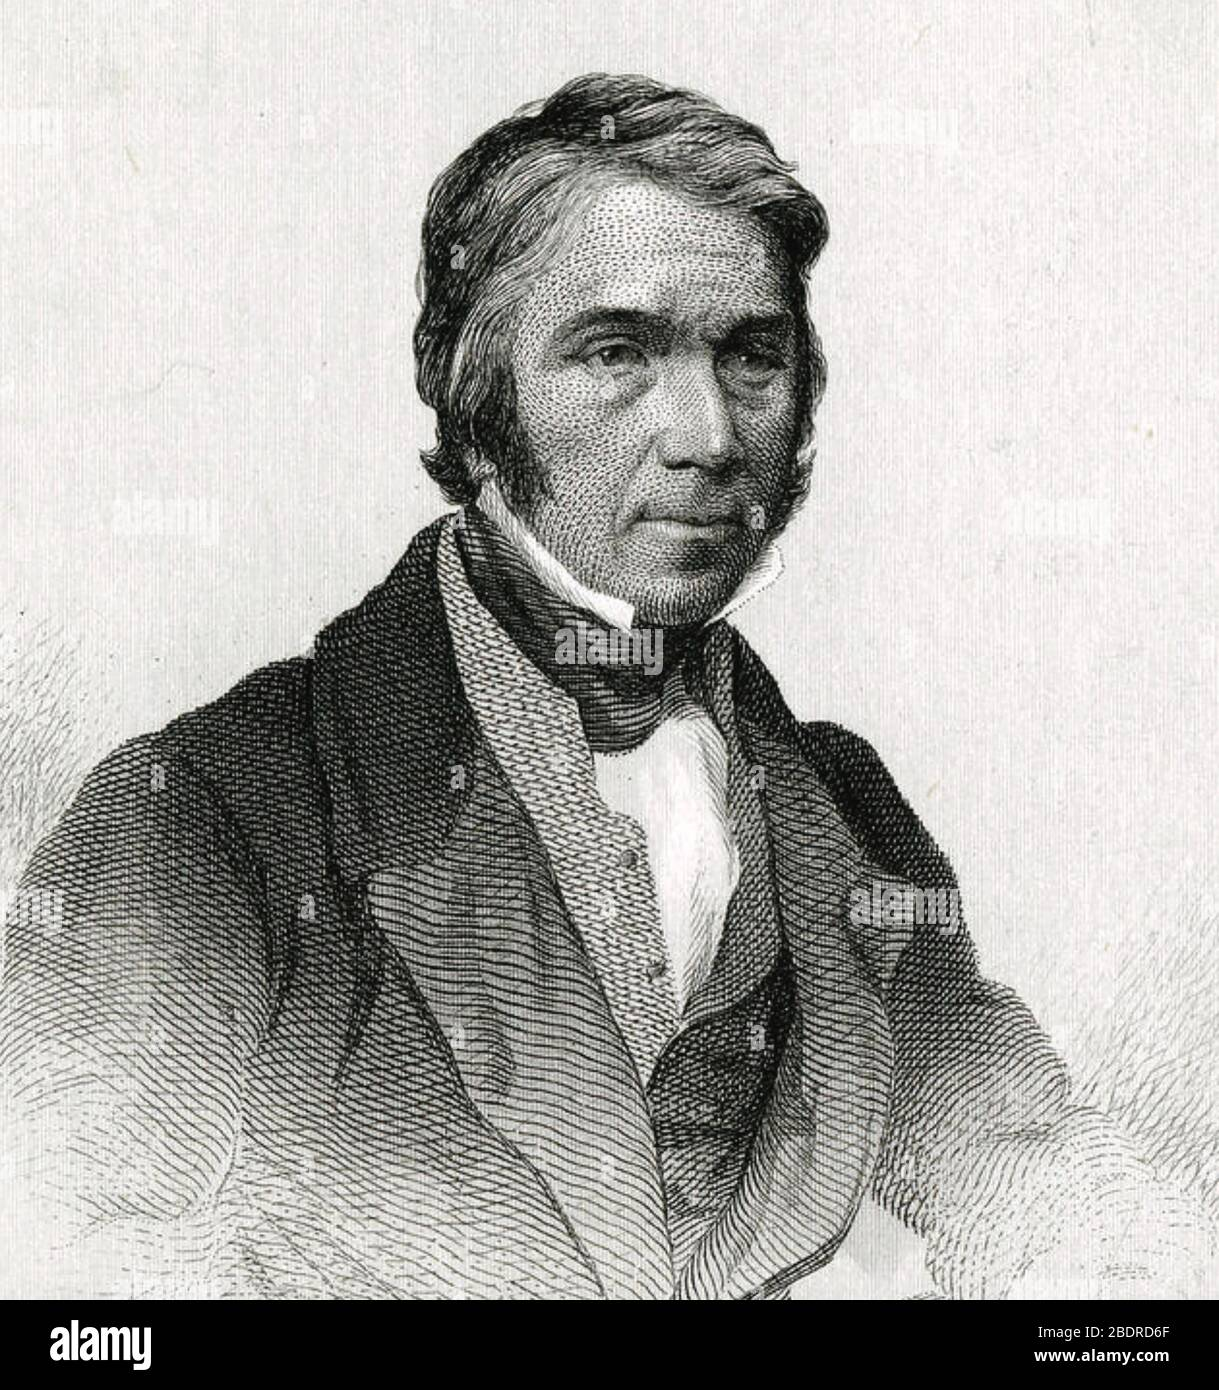 Thomas Carlyle High Resolution Stock Photography And Images Alamy